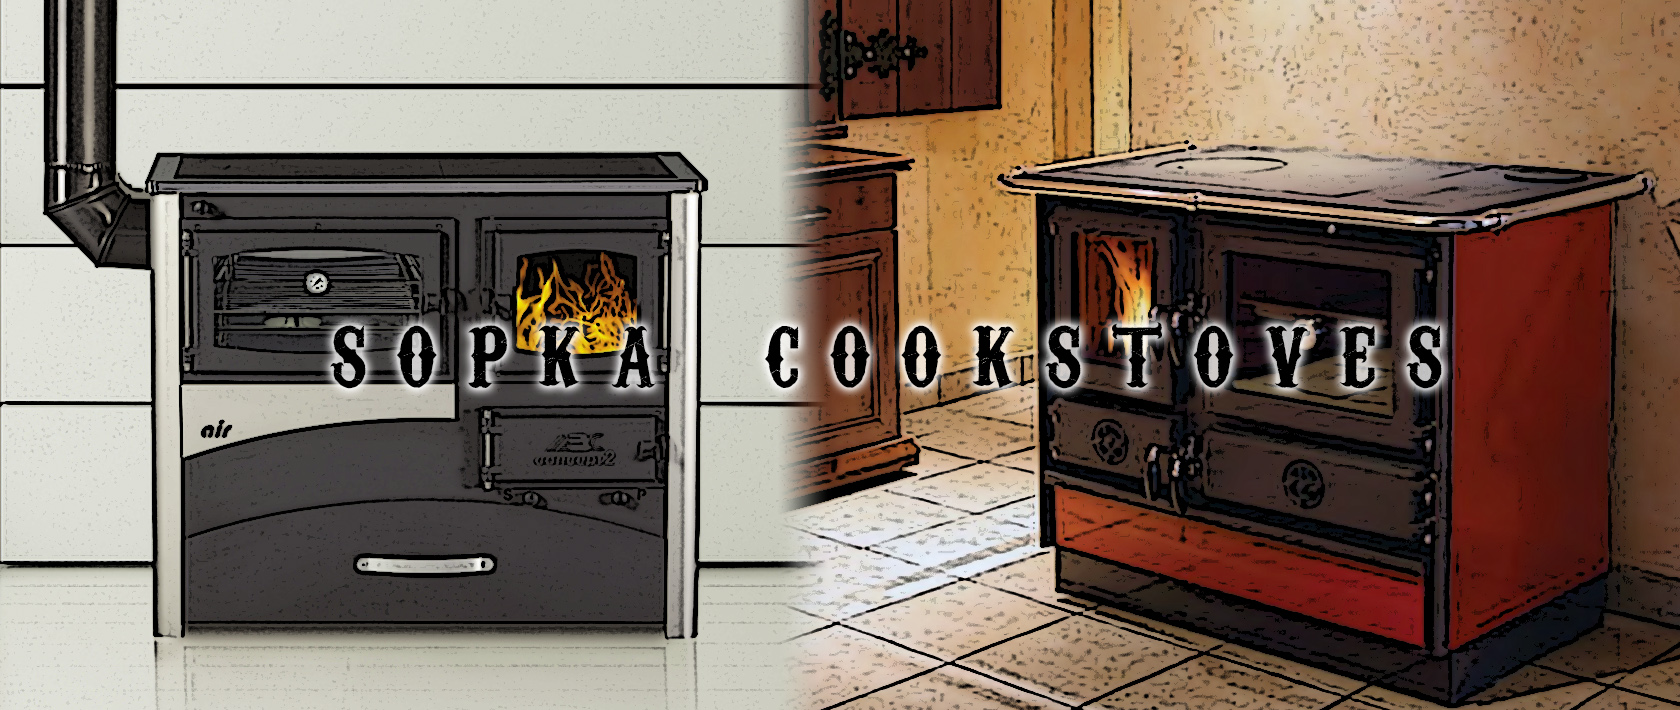 Sopka Cookstoves – Cookstove Community